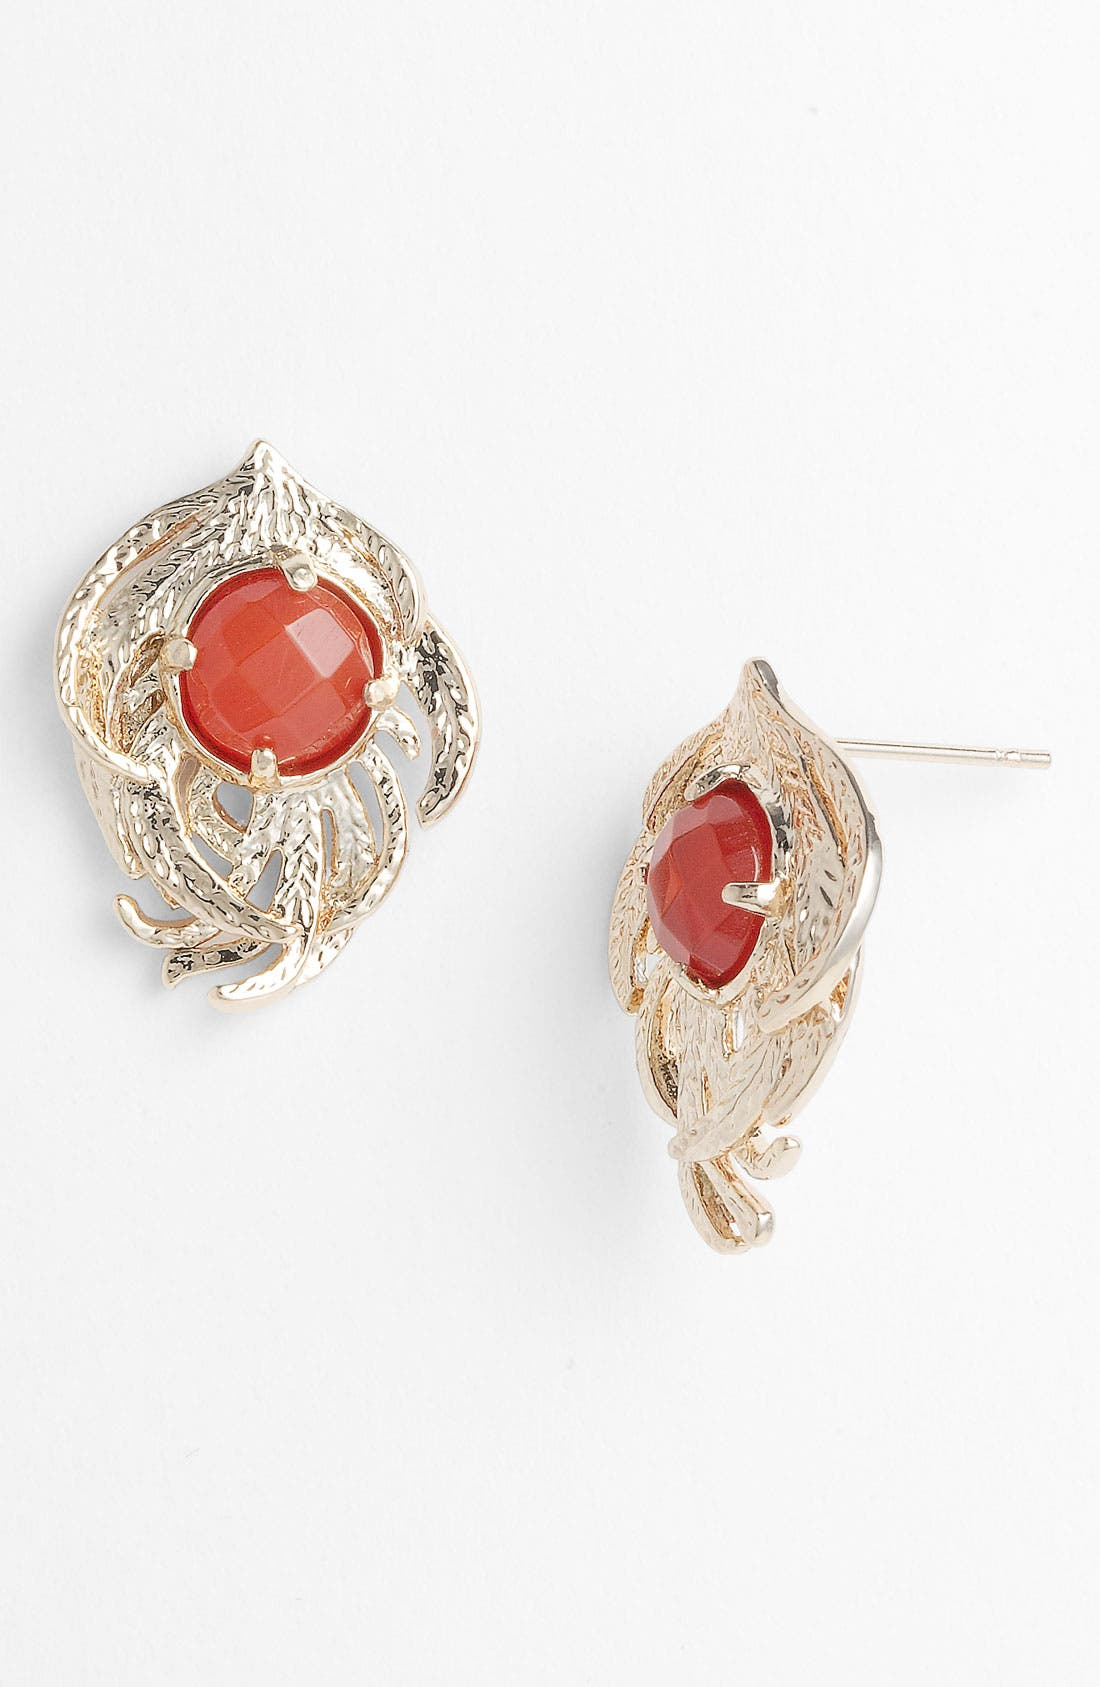 Main Image - Kendra Scott 'Hailey' Stud Earrings